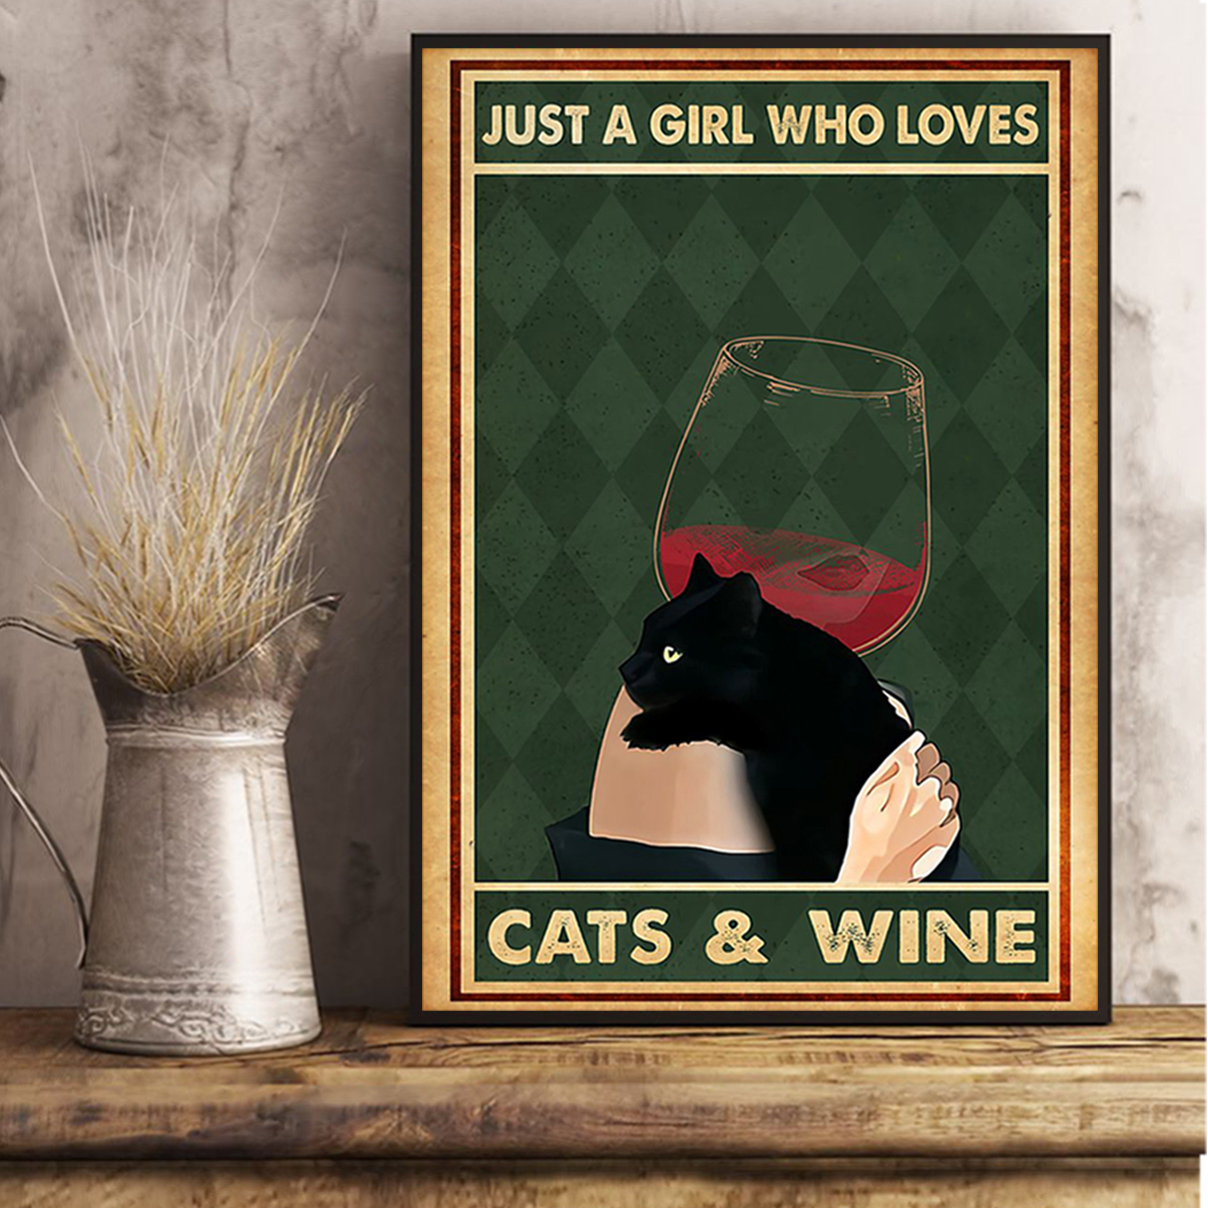 Just a girl who loves cats and wine poster A2